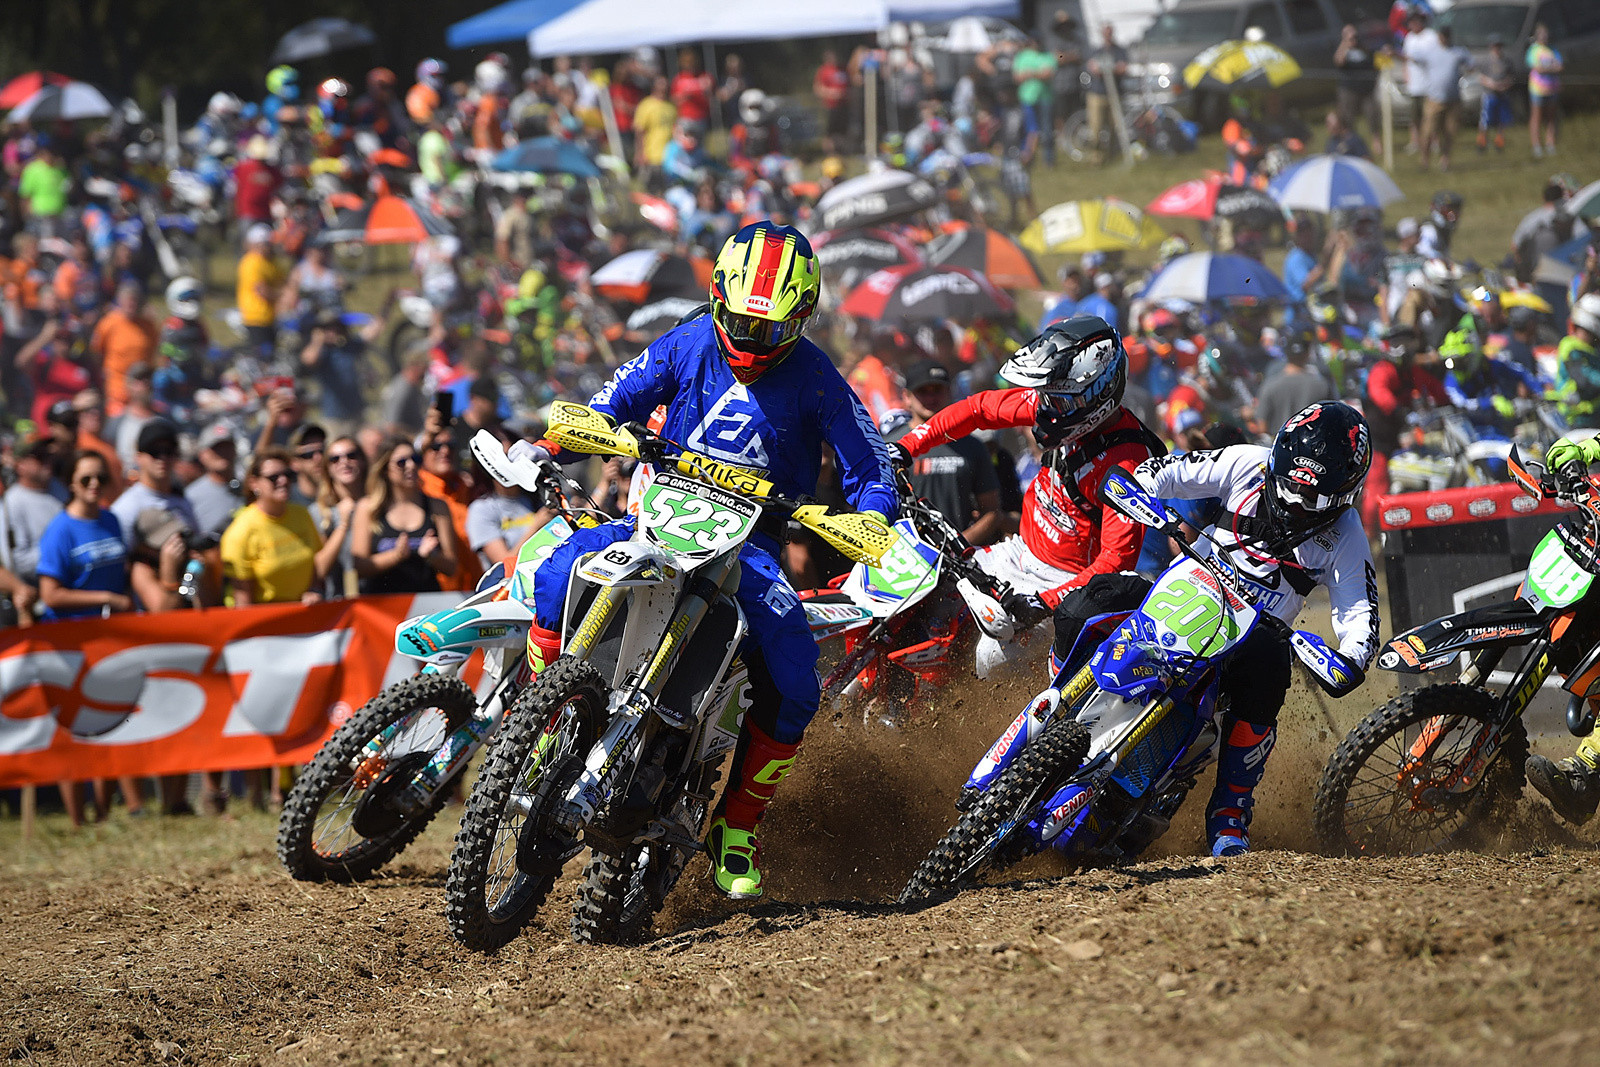 XC2 has been a battle this season, however, a new king would be crowned at this round.